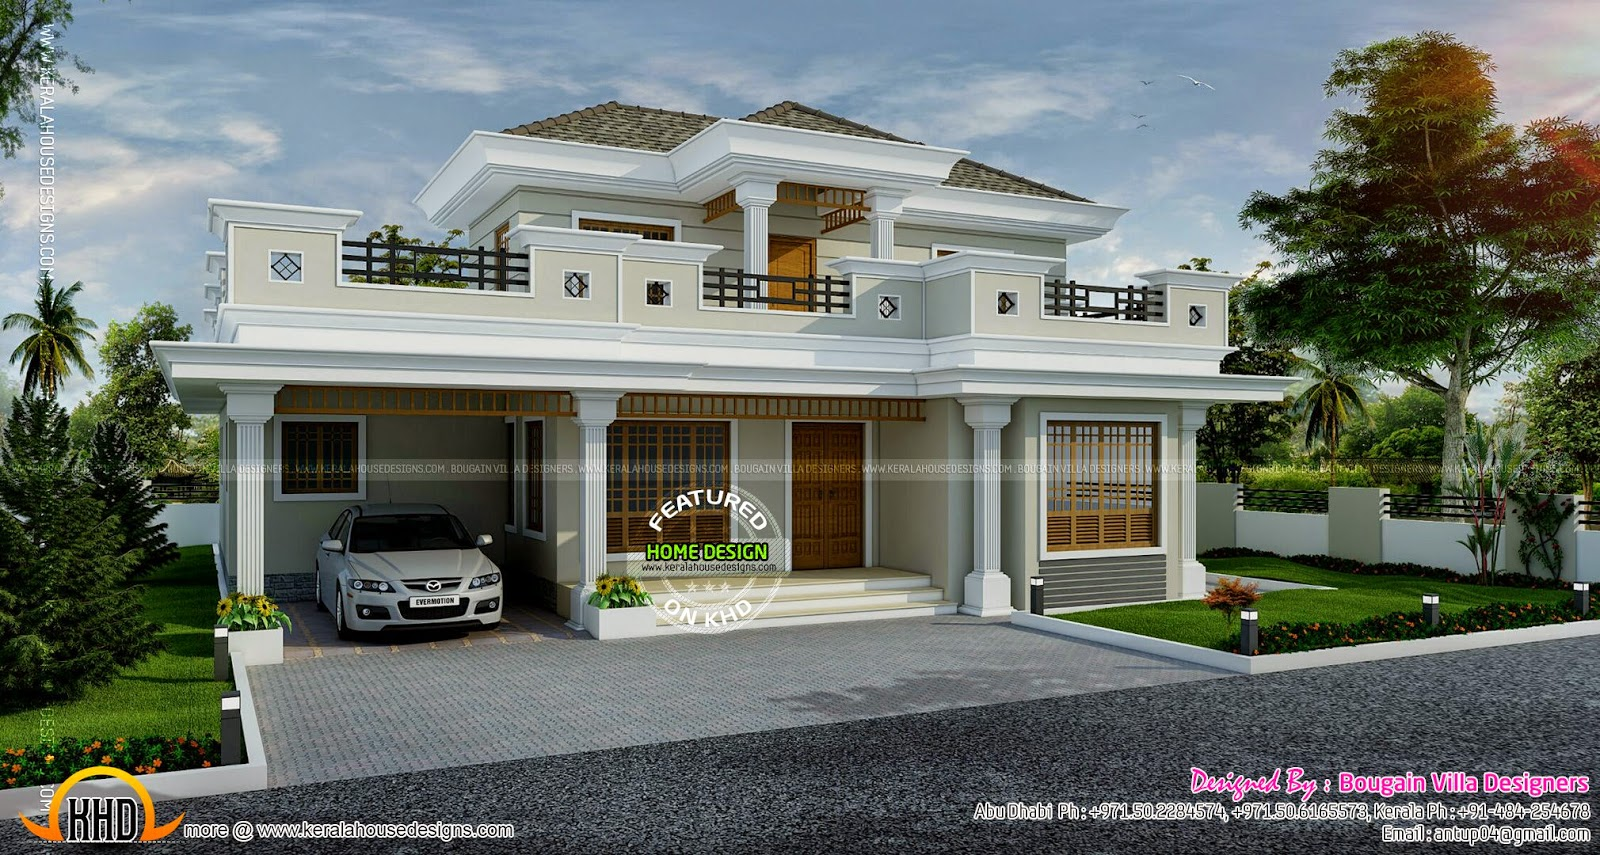 Stylish house exterior kerala home design and floor plans for One floor house exterior design